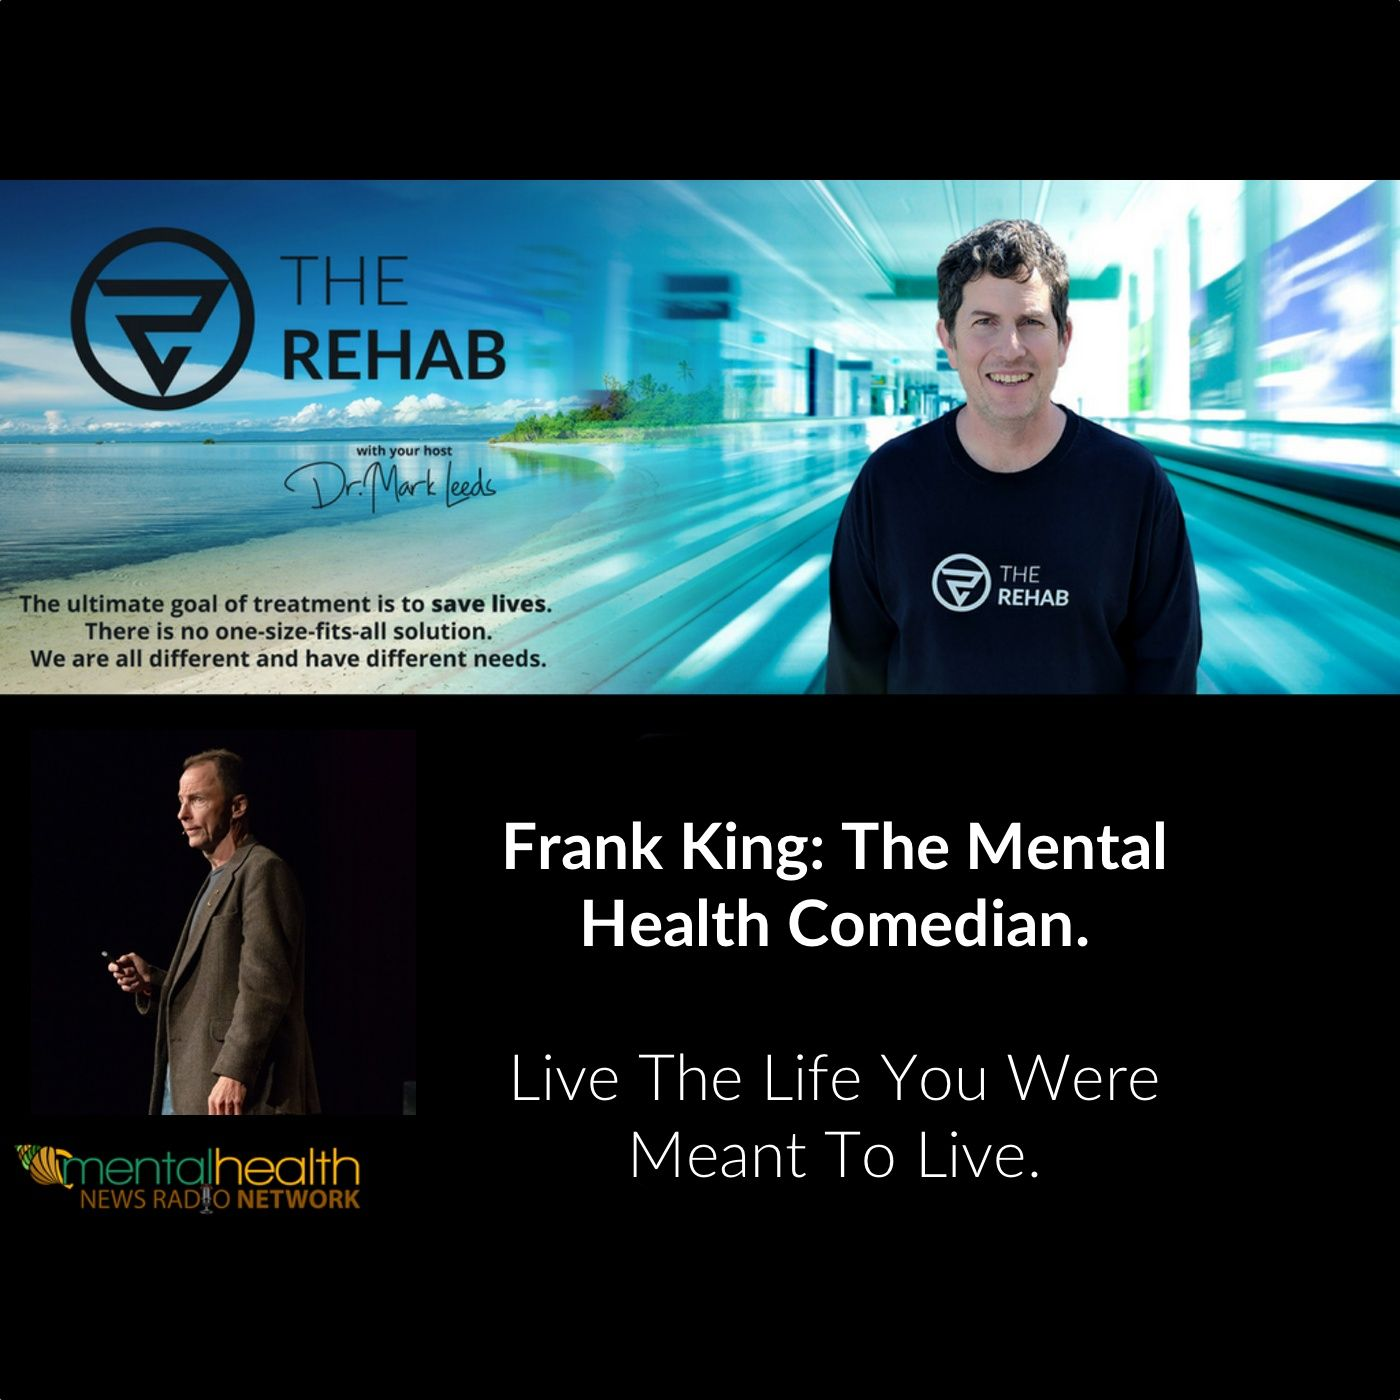 Frank King, The Mental Health Comedian: Live The Life You Were Meant To Live.